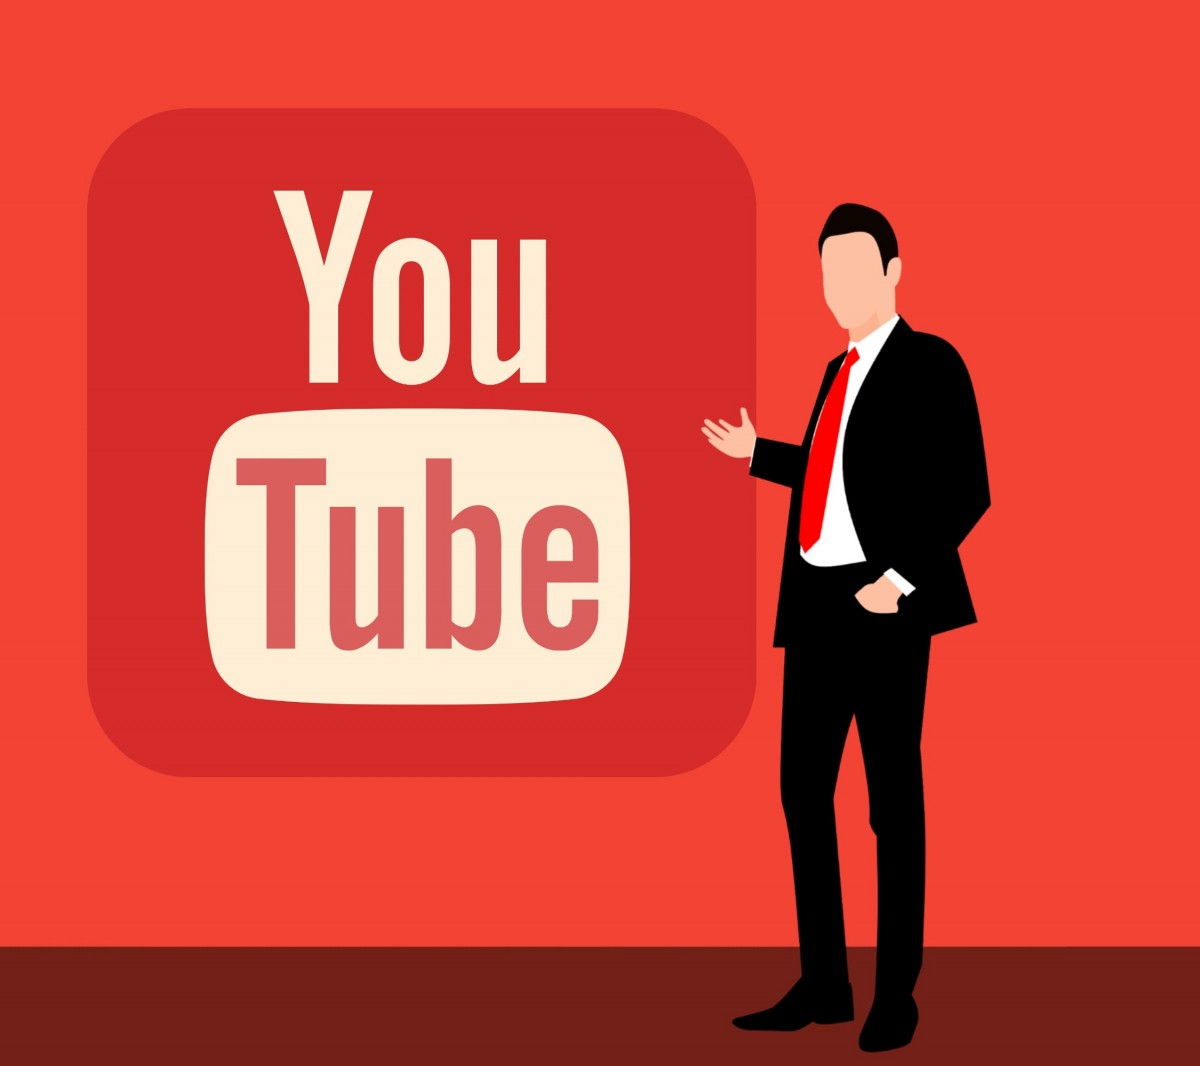 An illustration of a user video website with the graphic of a person with short hair in a suit standing beside.